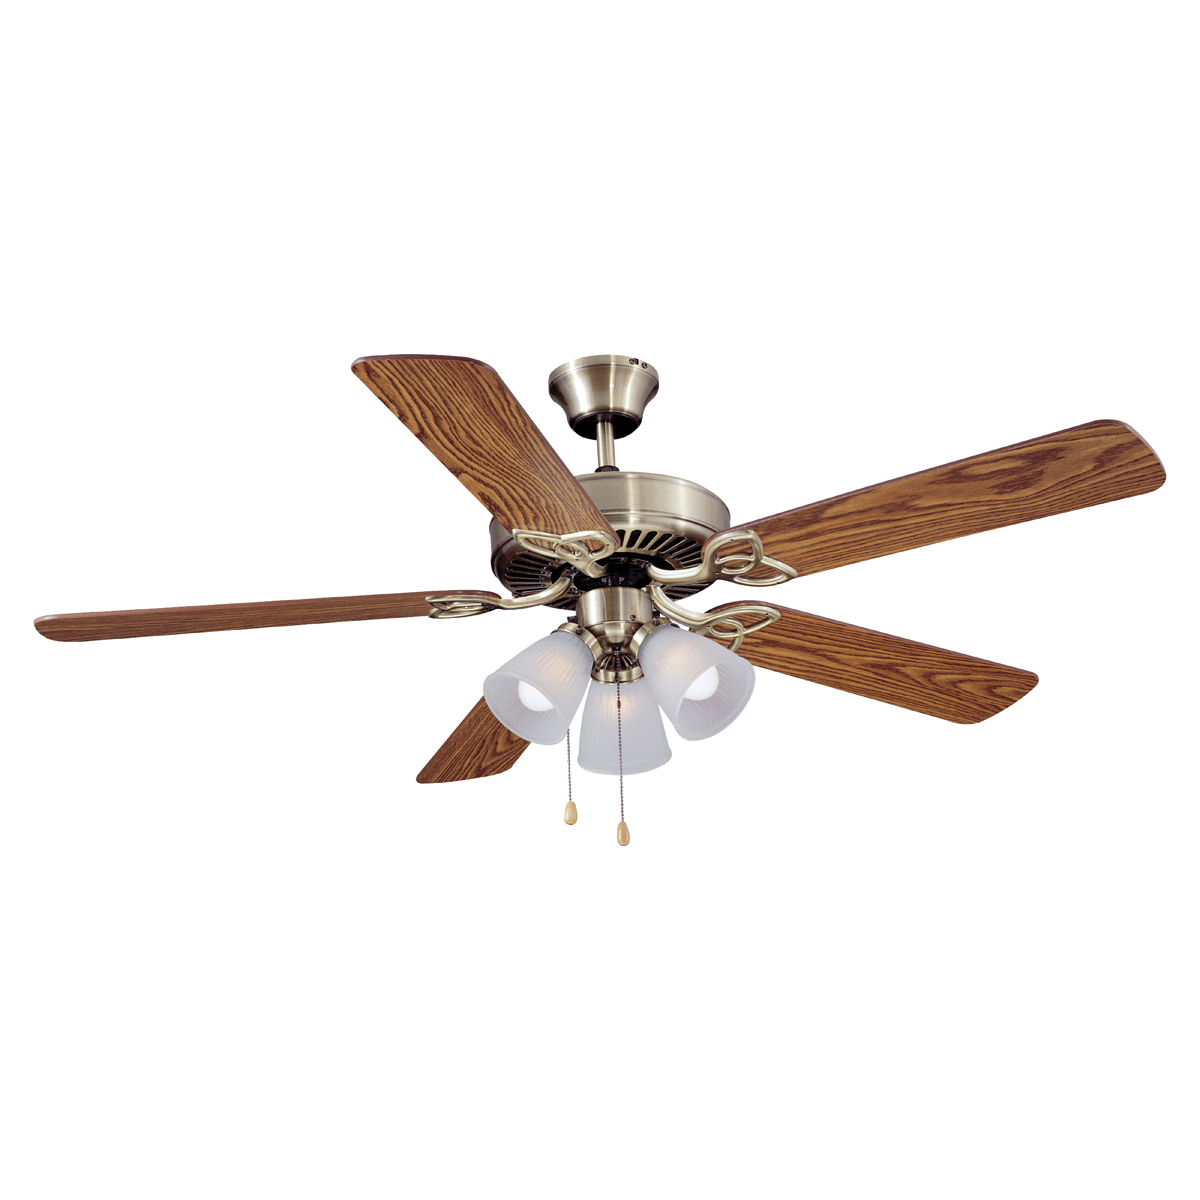 Picture of Boston Harbor CF-78042 Ceiling Fan, 0.8 A, 120 V, 5-Blade, 52 in Sweep, 2605 cfm Air